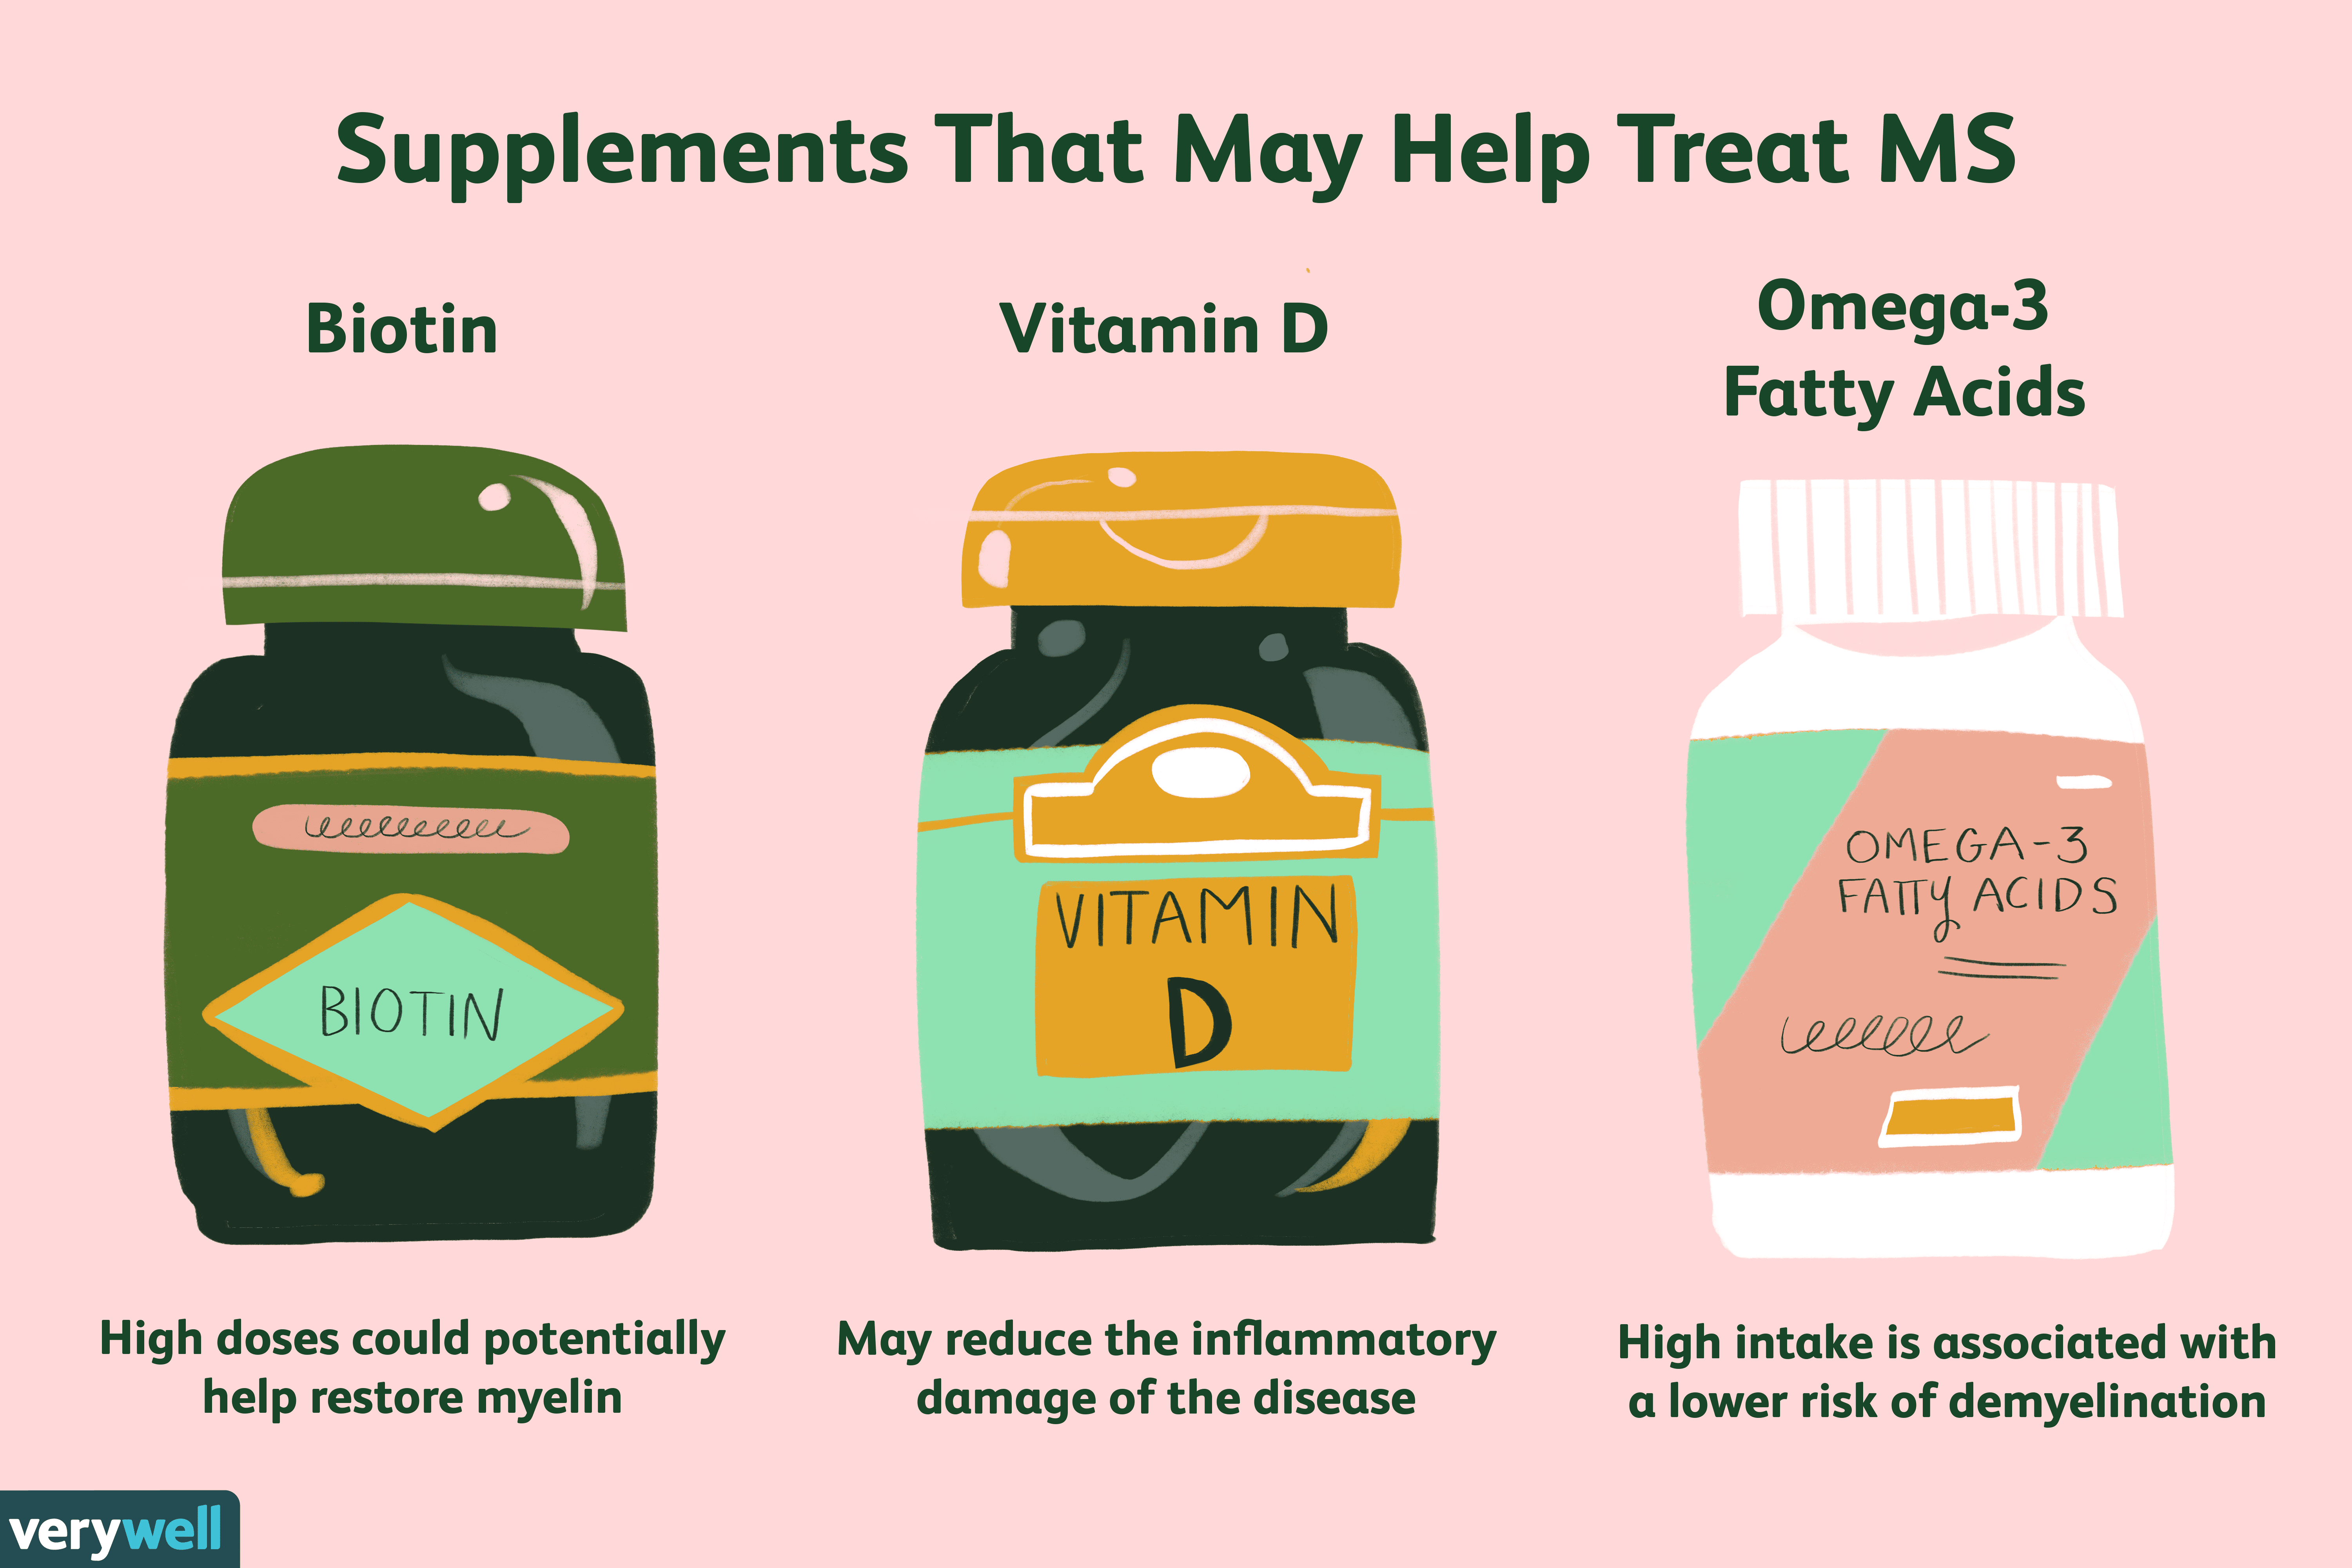 Dietary Supplements to Help Treat MS